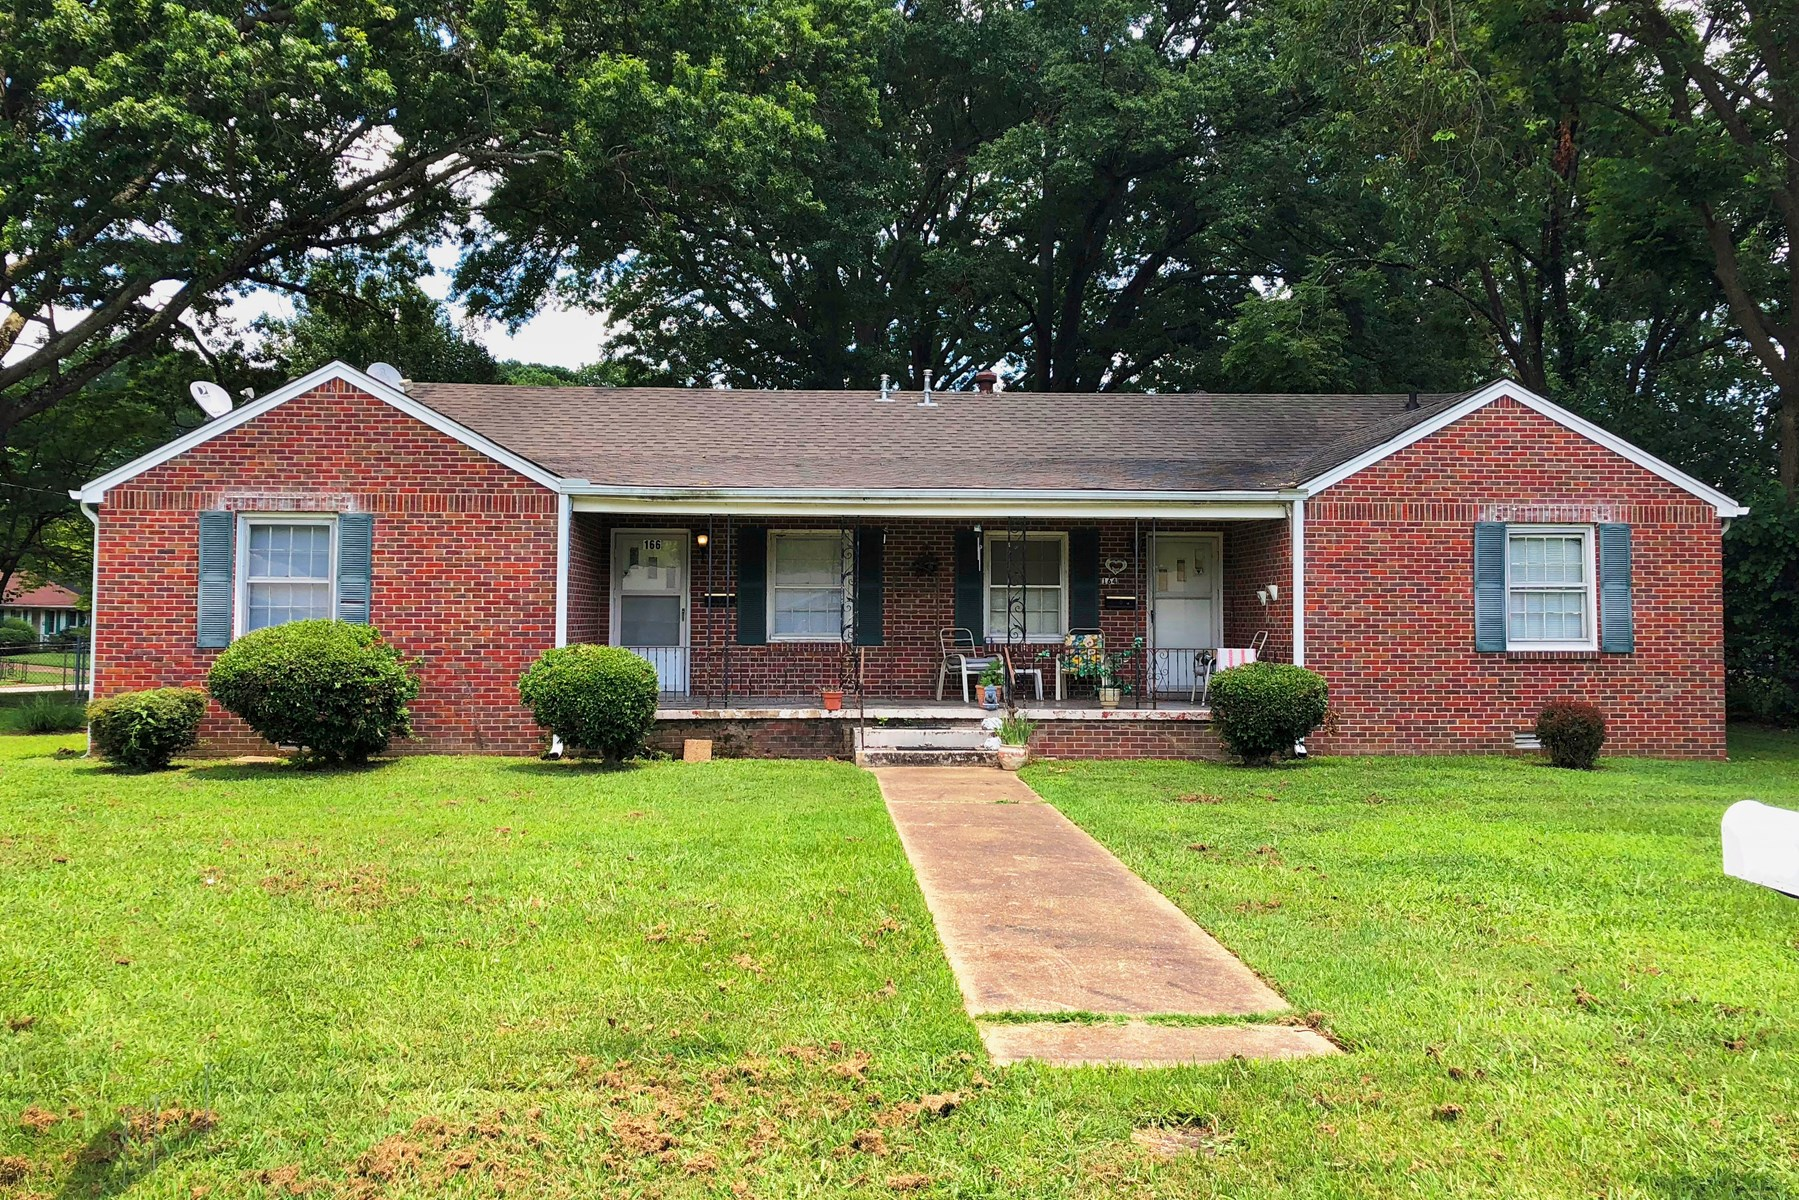 5 BR 3 Ba, Brick Duplex w/ Rental Income in Jackson TN,